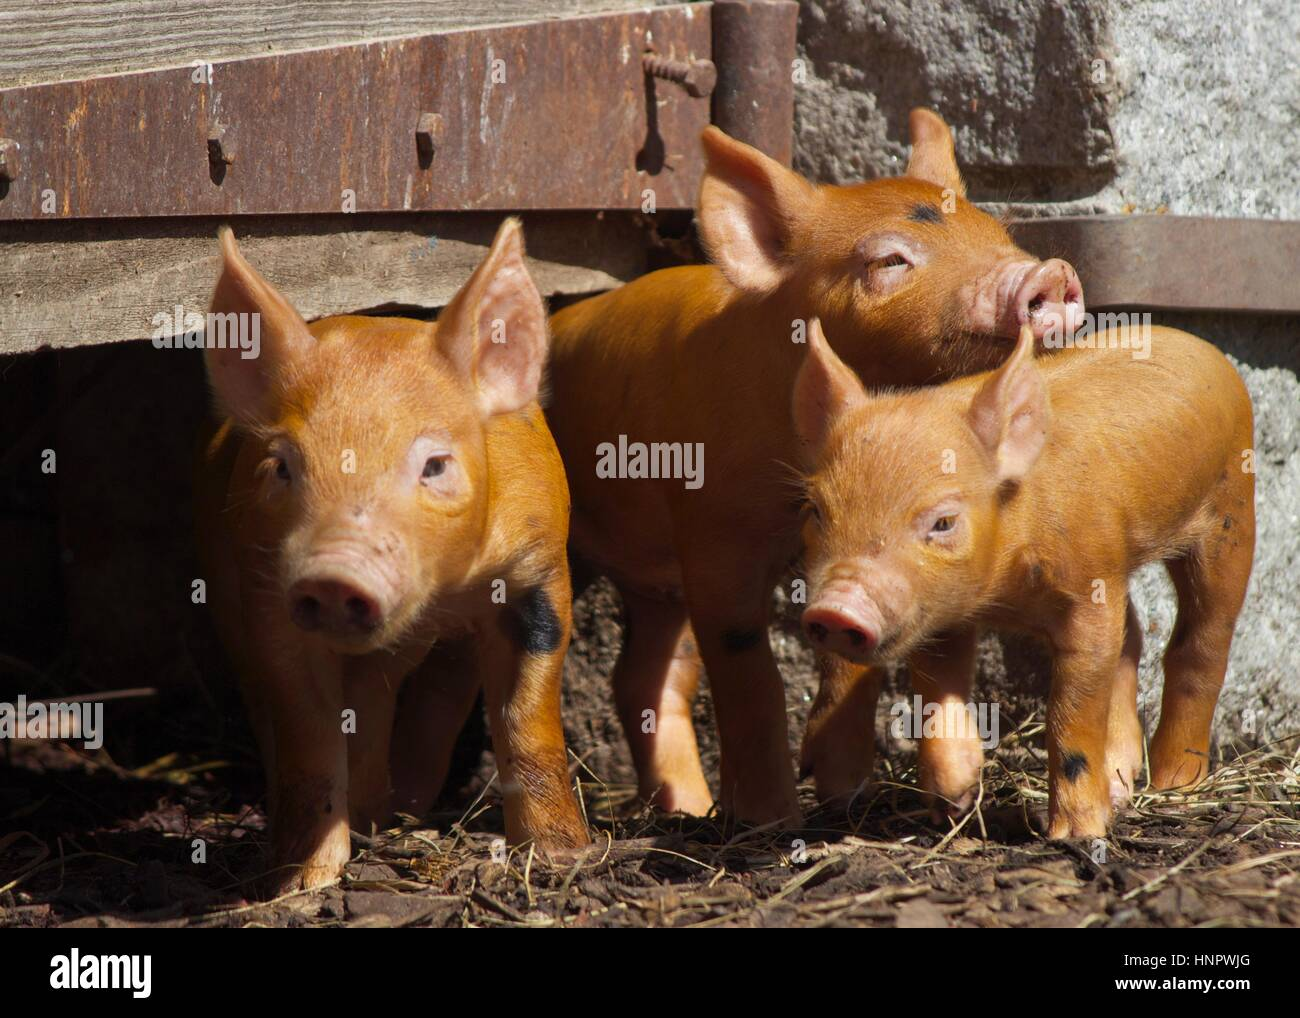 Three little piglets standing in a farmyard. - Stock Image